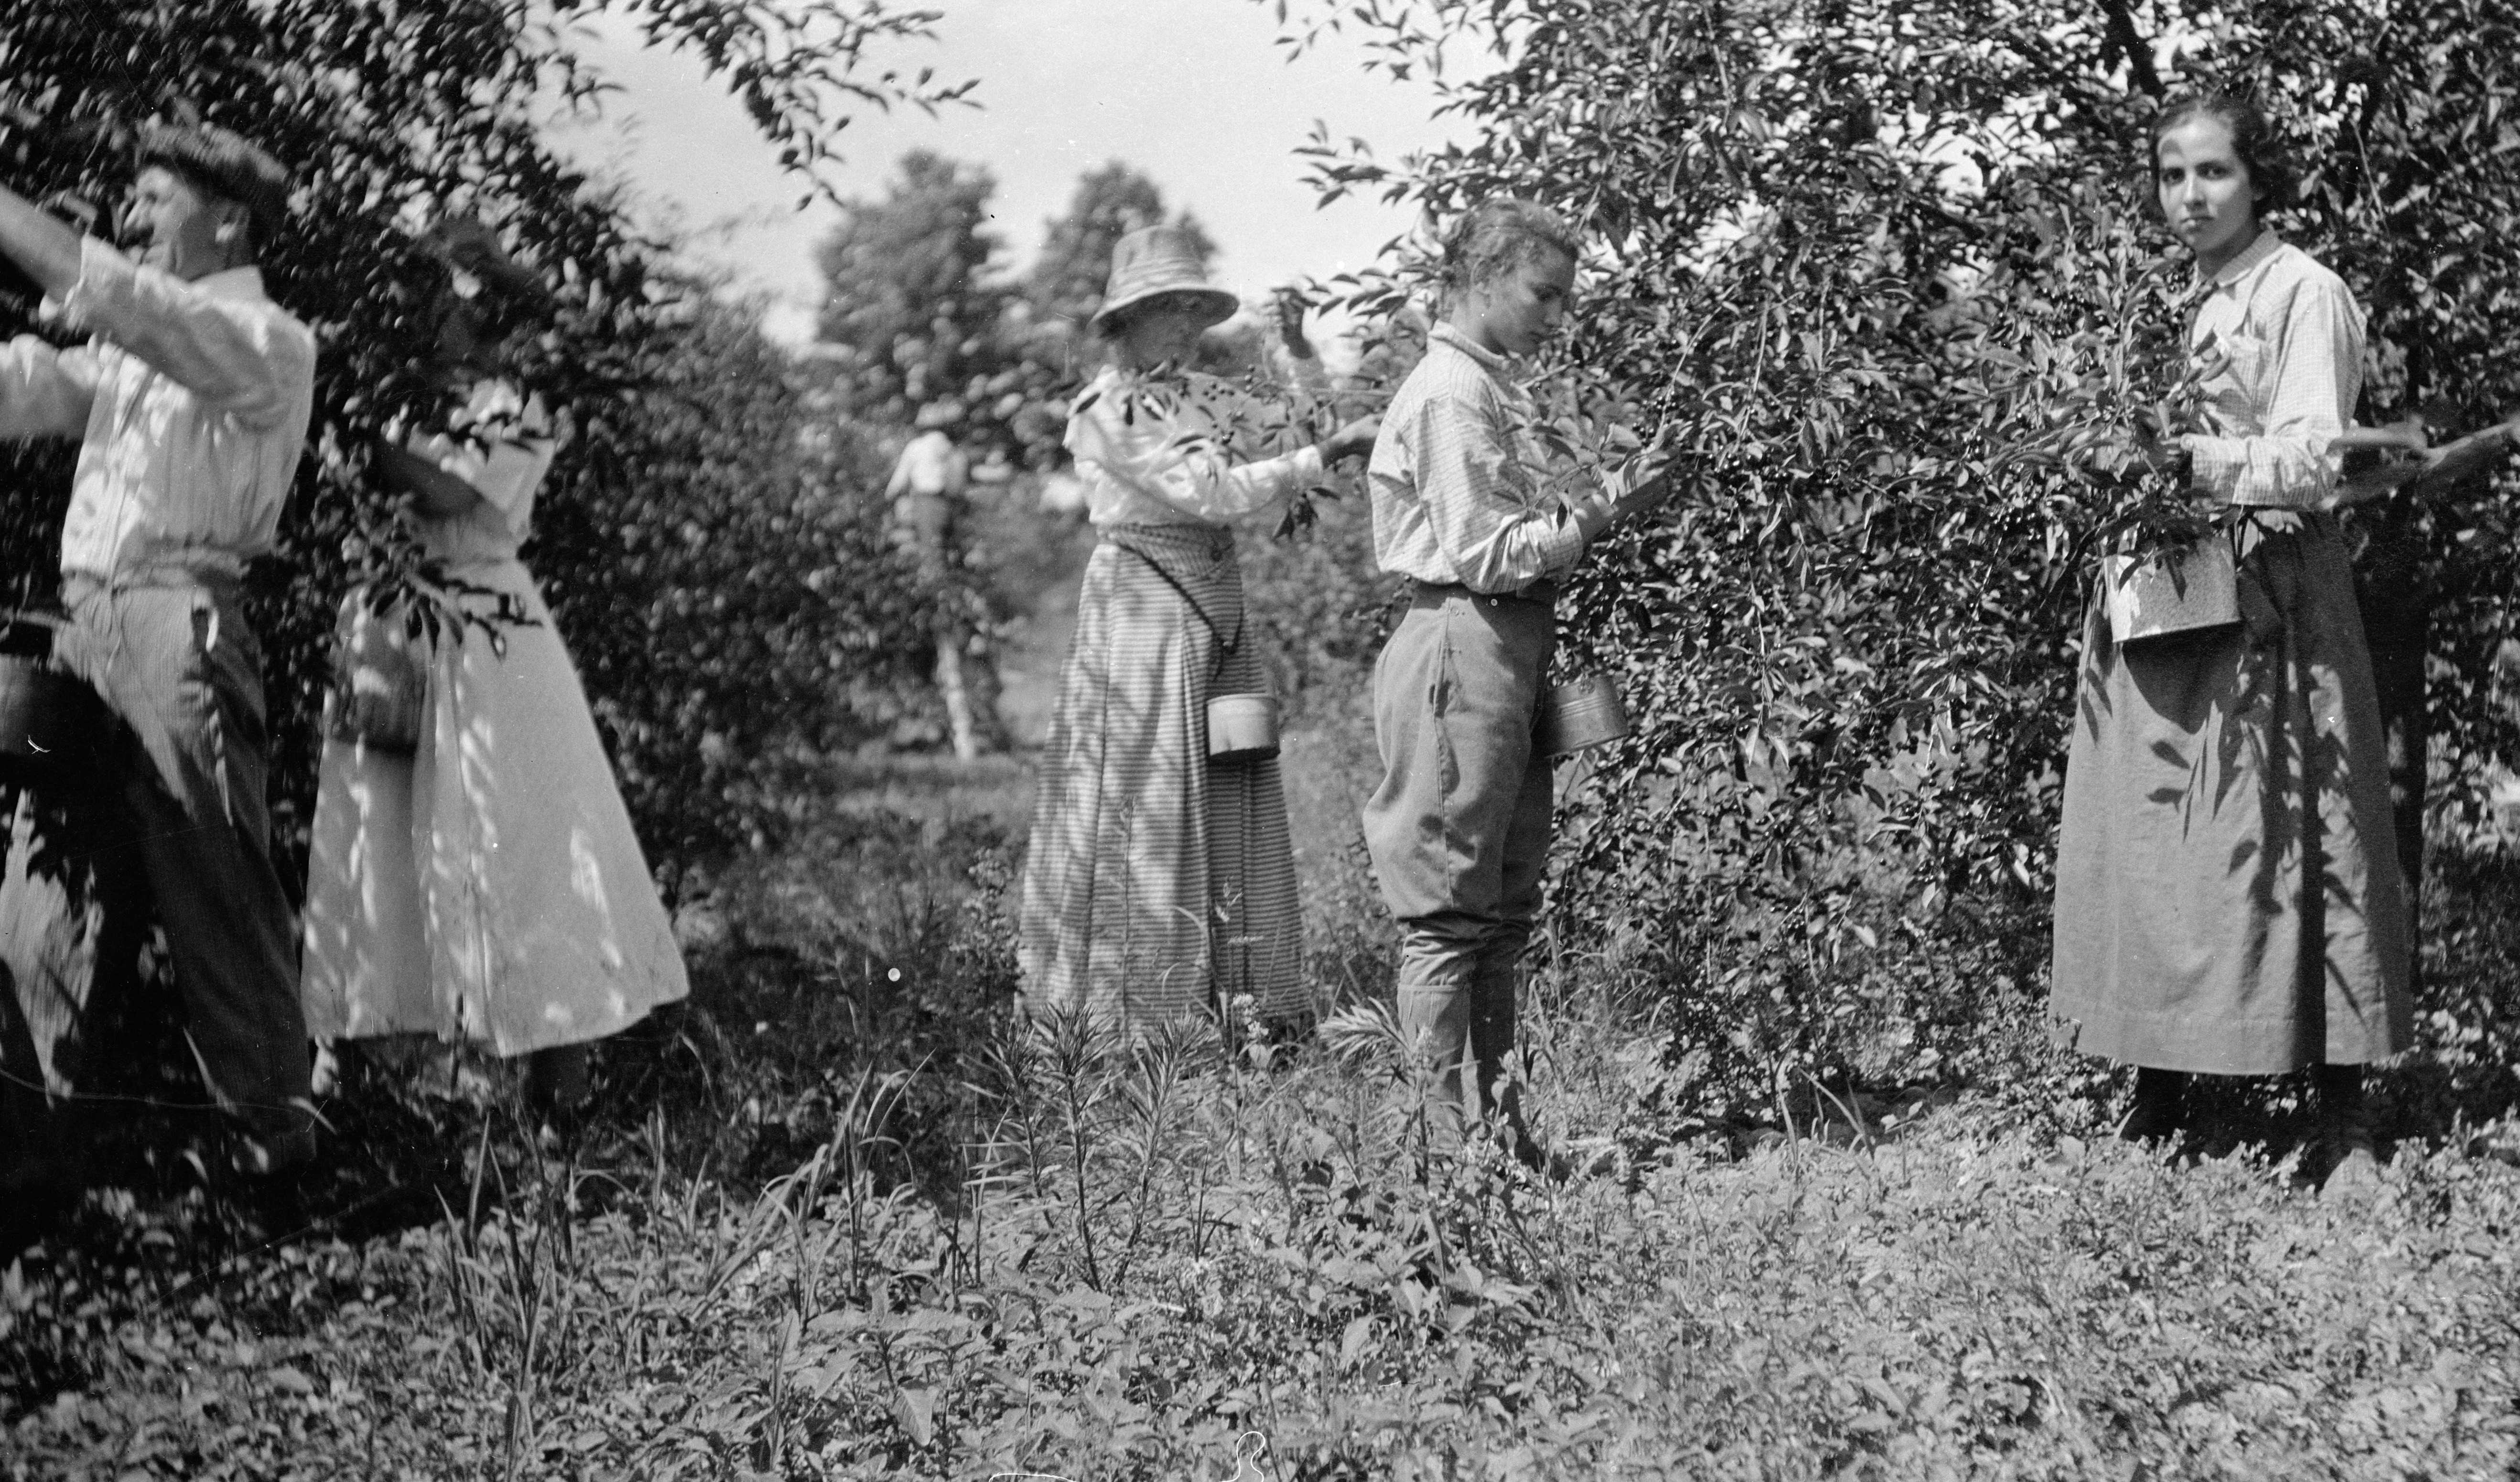 People Plucking Cherries Image courtesy of the Wisconsin Historical Society. Image ID: 93442.